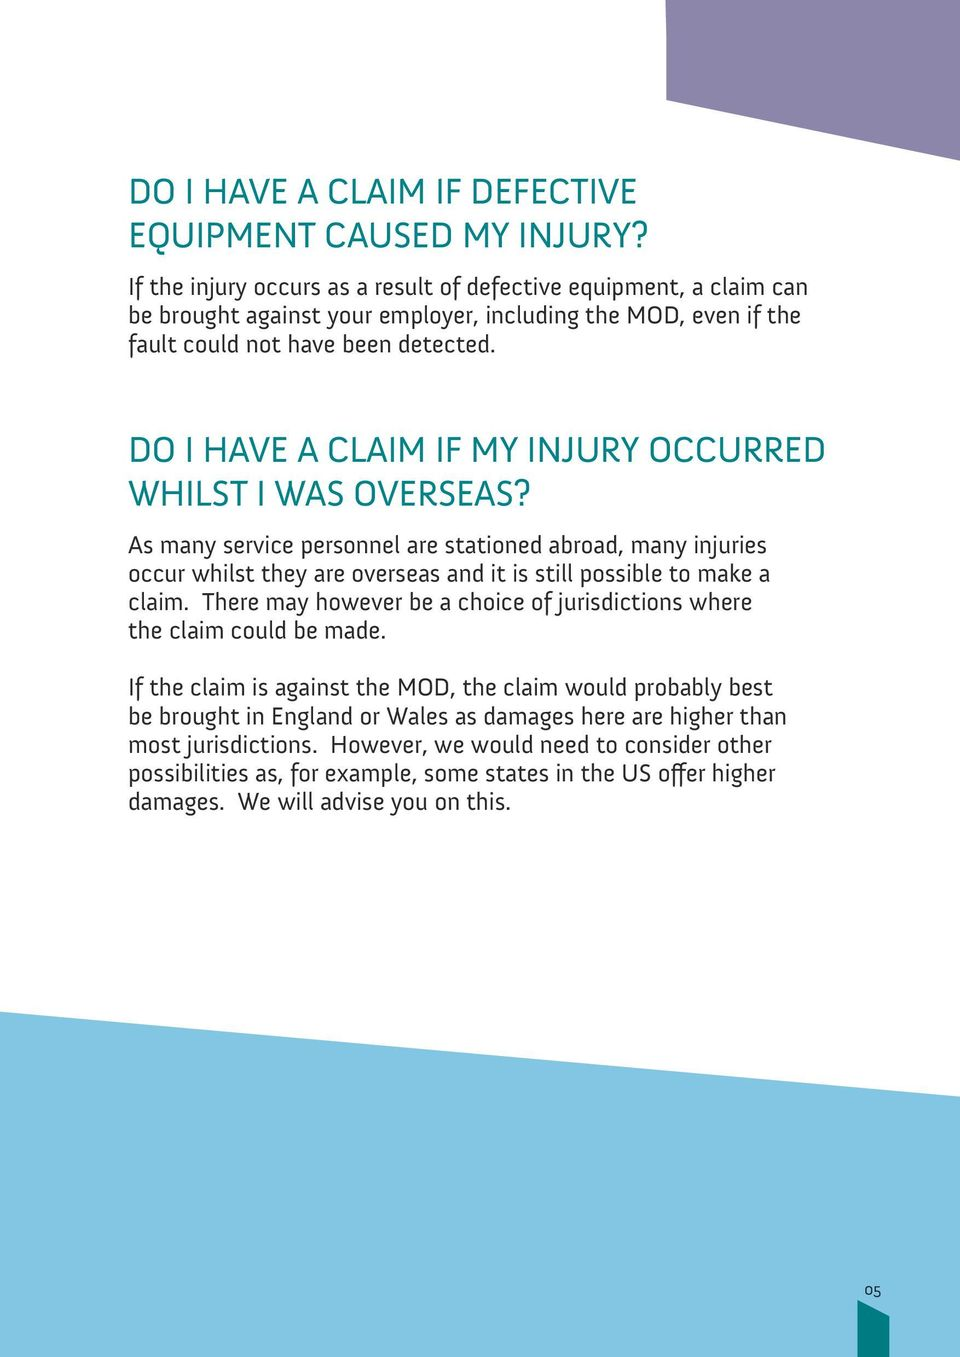 DO I HAVE A CLAIM IF MY INJURY OCCURRED WHILST I WAS OVERSEAS? As many service personnel are stationed abroad, many injuries occur whilst they are overseas and it is still possible to make a claim.